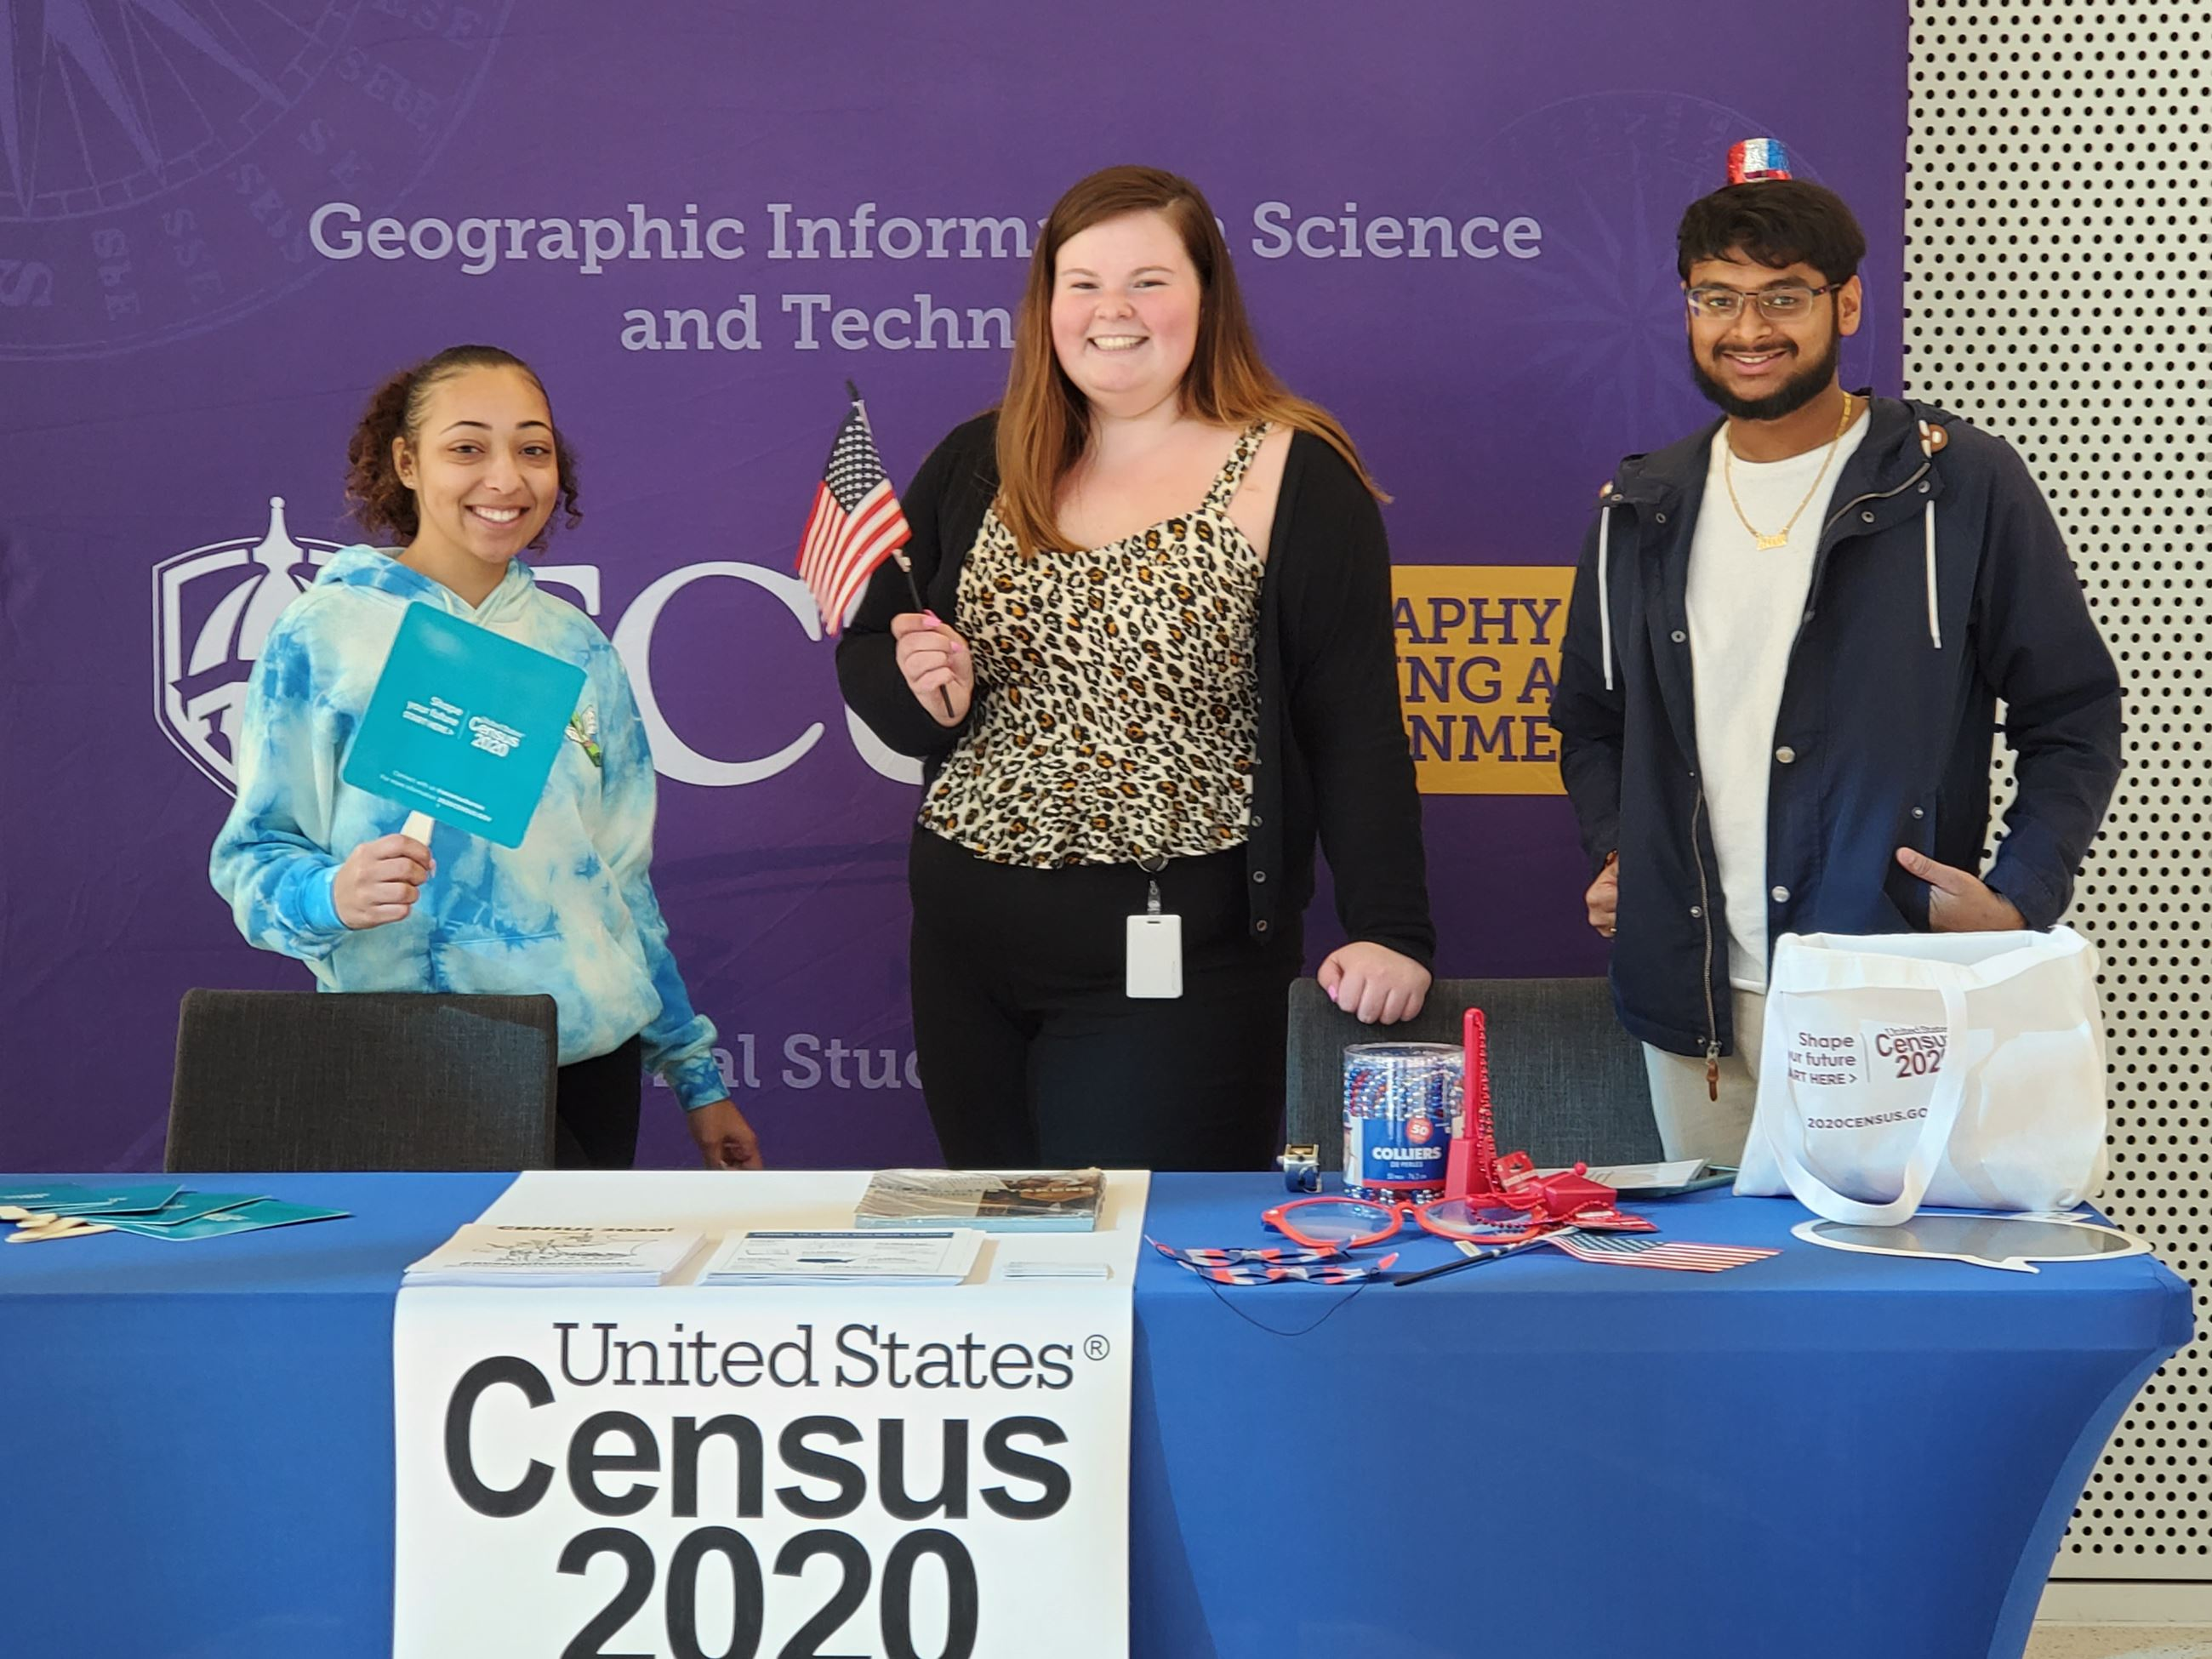 3 ECU SPAN Members promote Census 2020 on ECU Campus